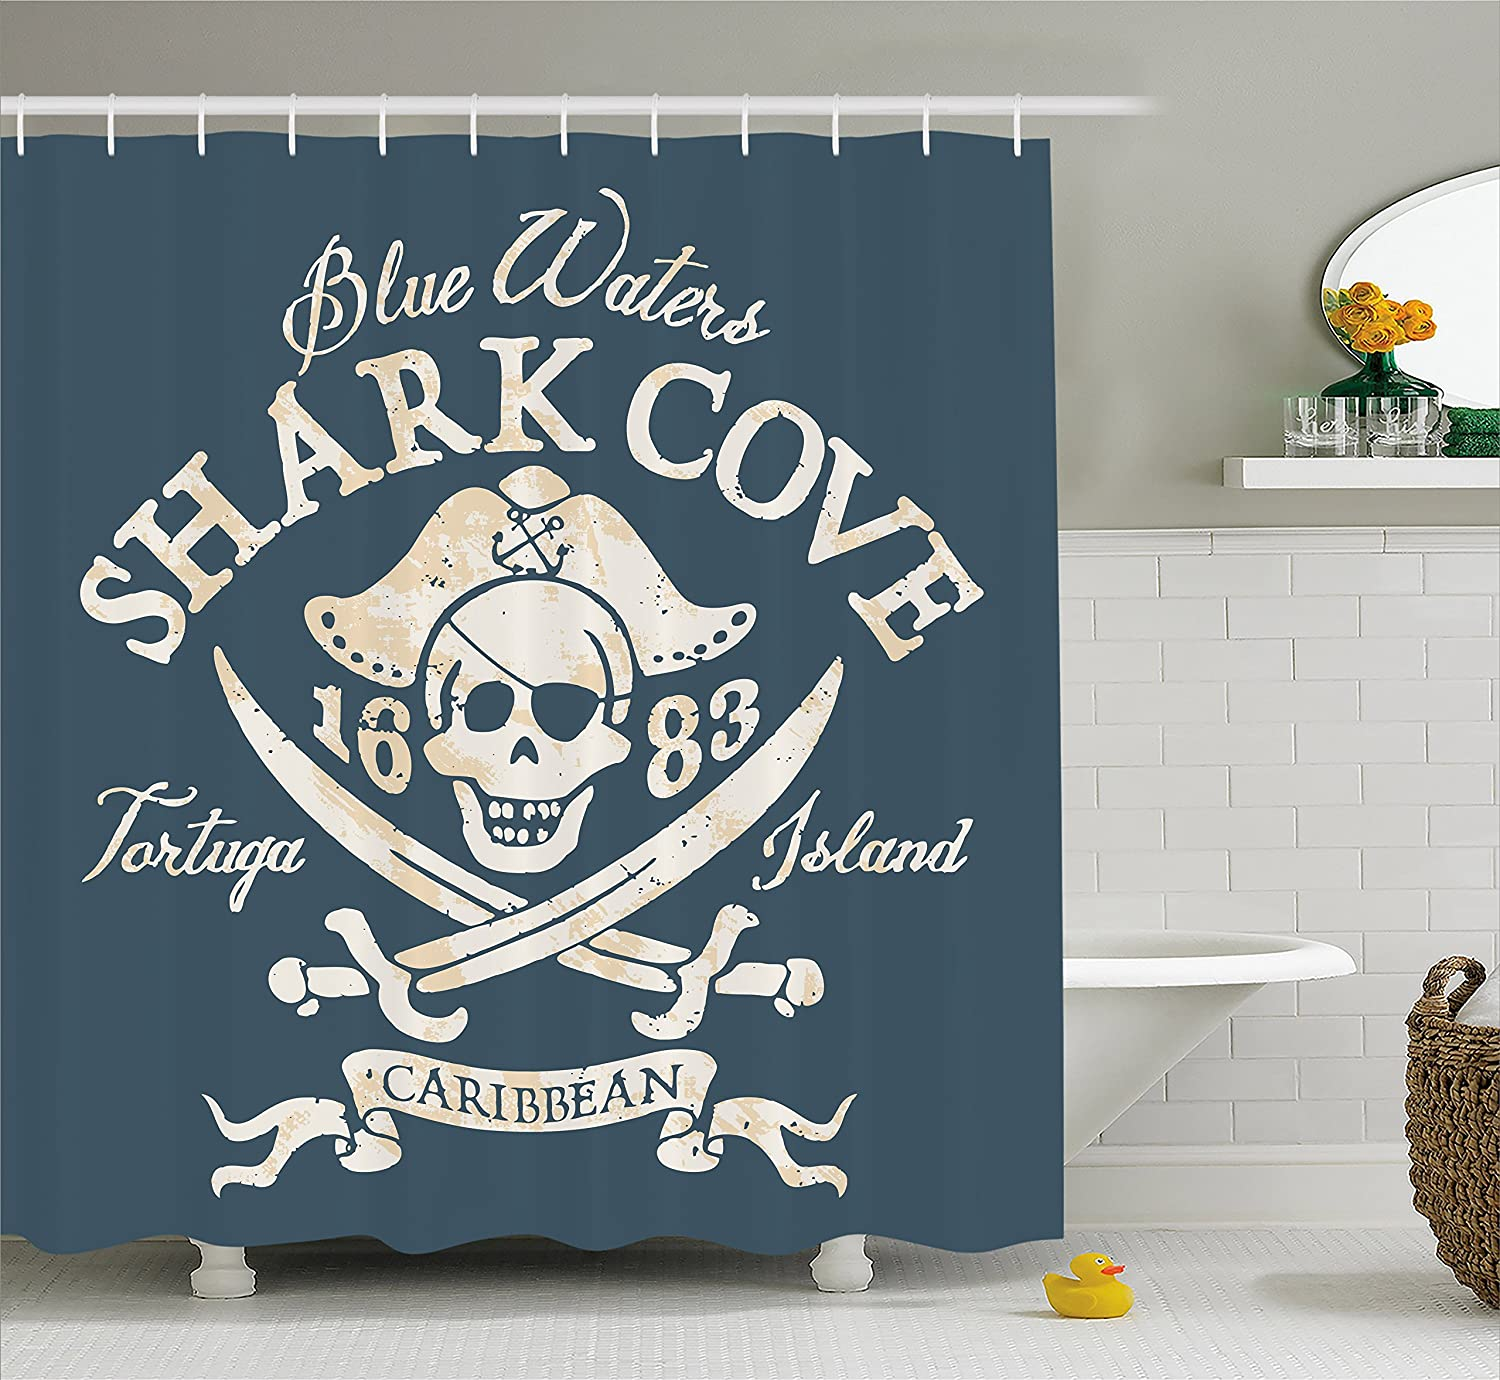 """Ambesonne Pirate Shower Curtain, Shark Cove Tortuga Island Caribbean Waters Retro Jolly Roger, Cloth Fabric Bathroom Decor Set with Hooks, 70"""" Long, Mustard Blue"""